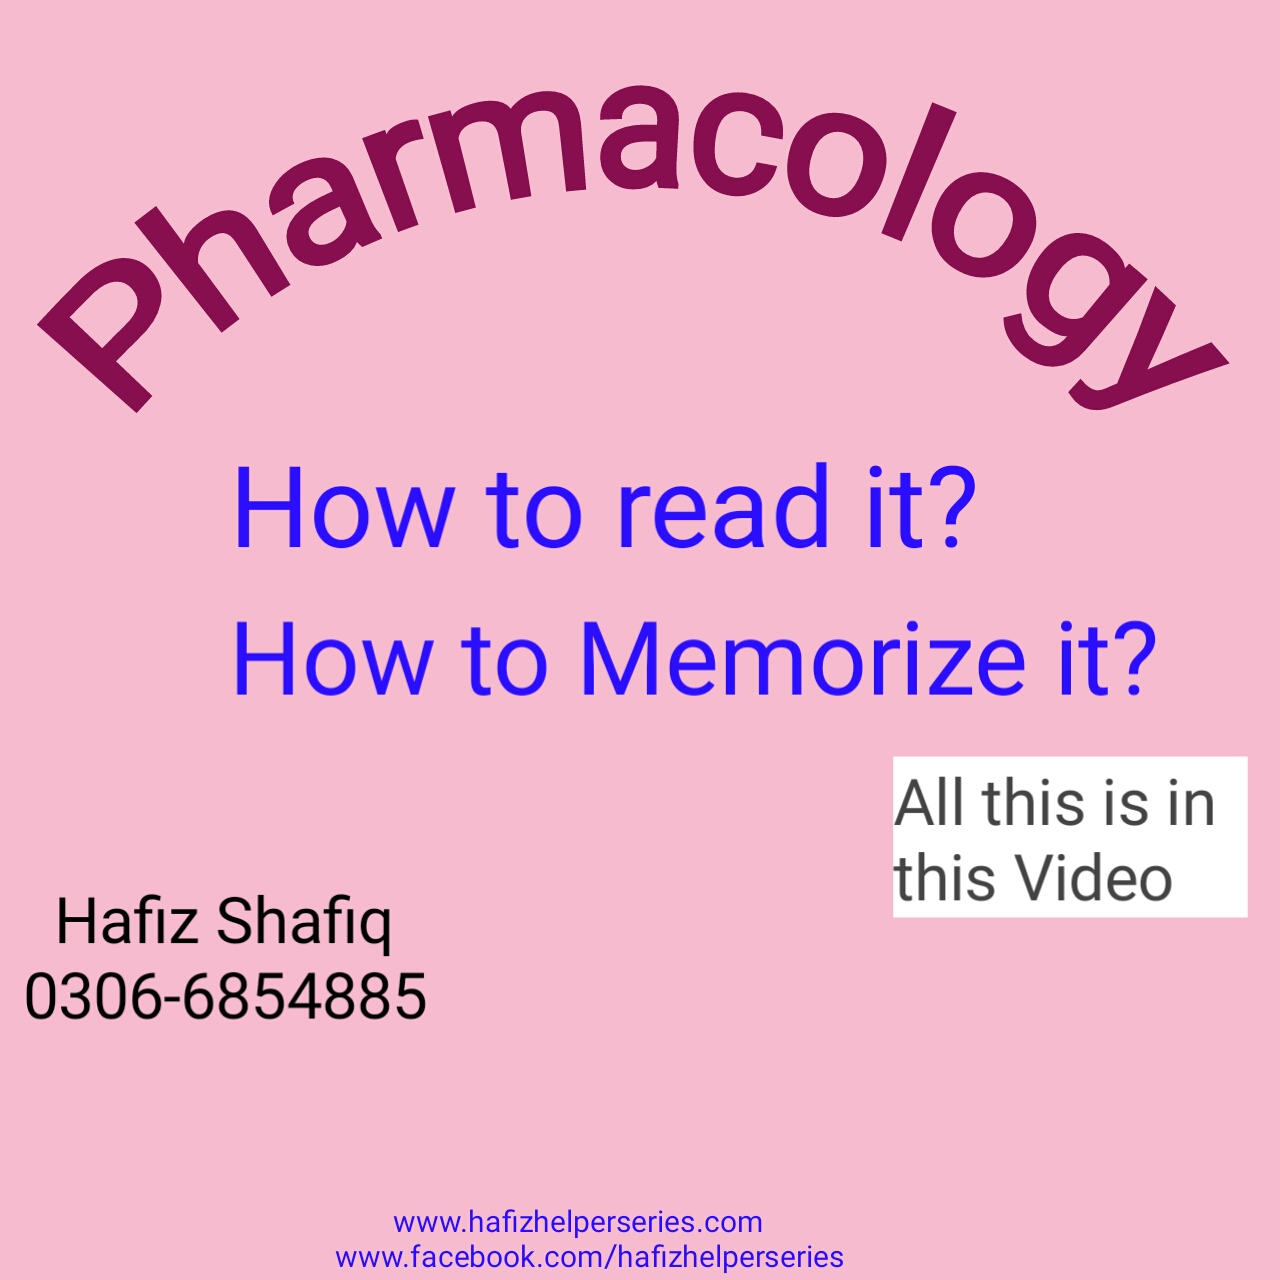 How to Study Pharmacology? In Medical Colleges